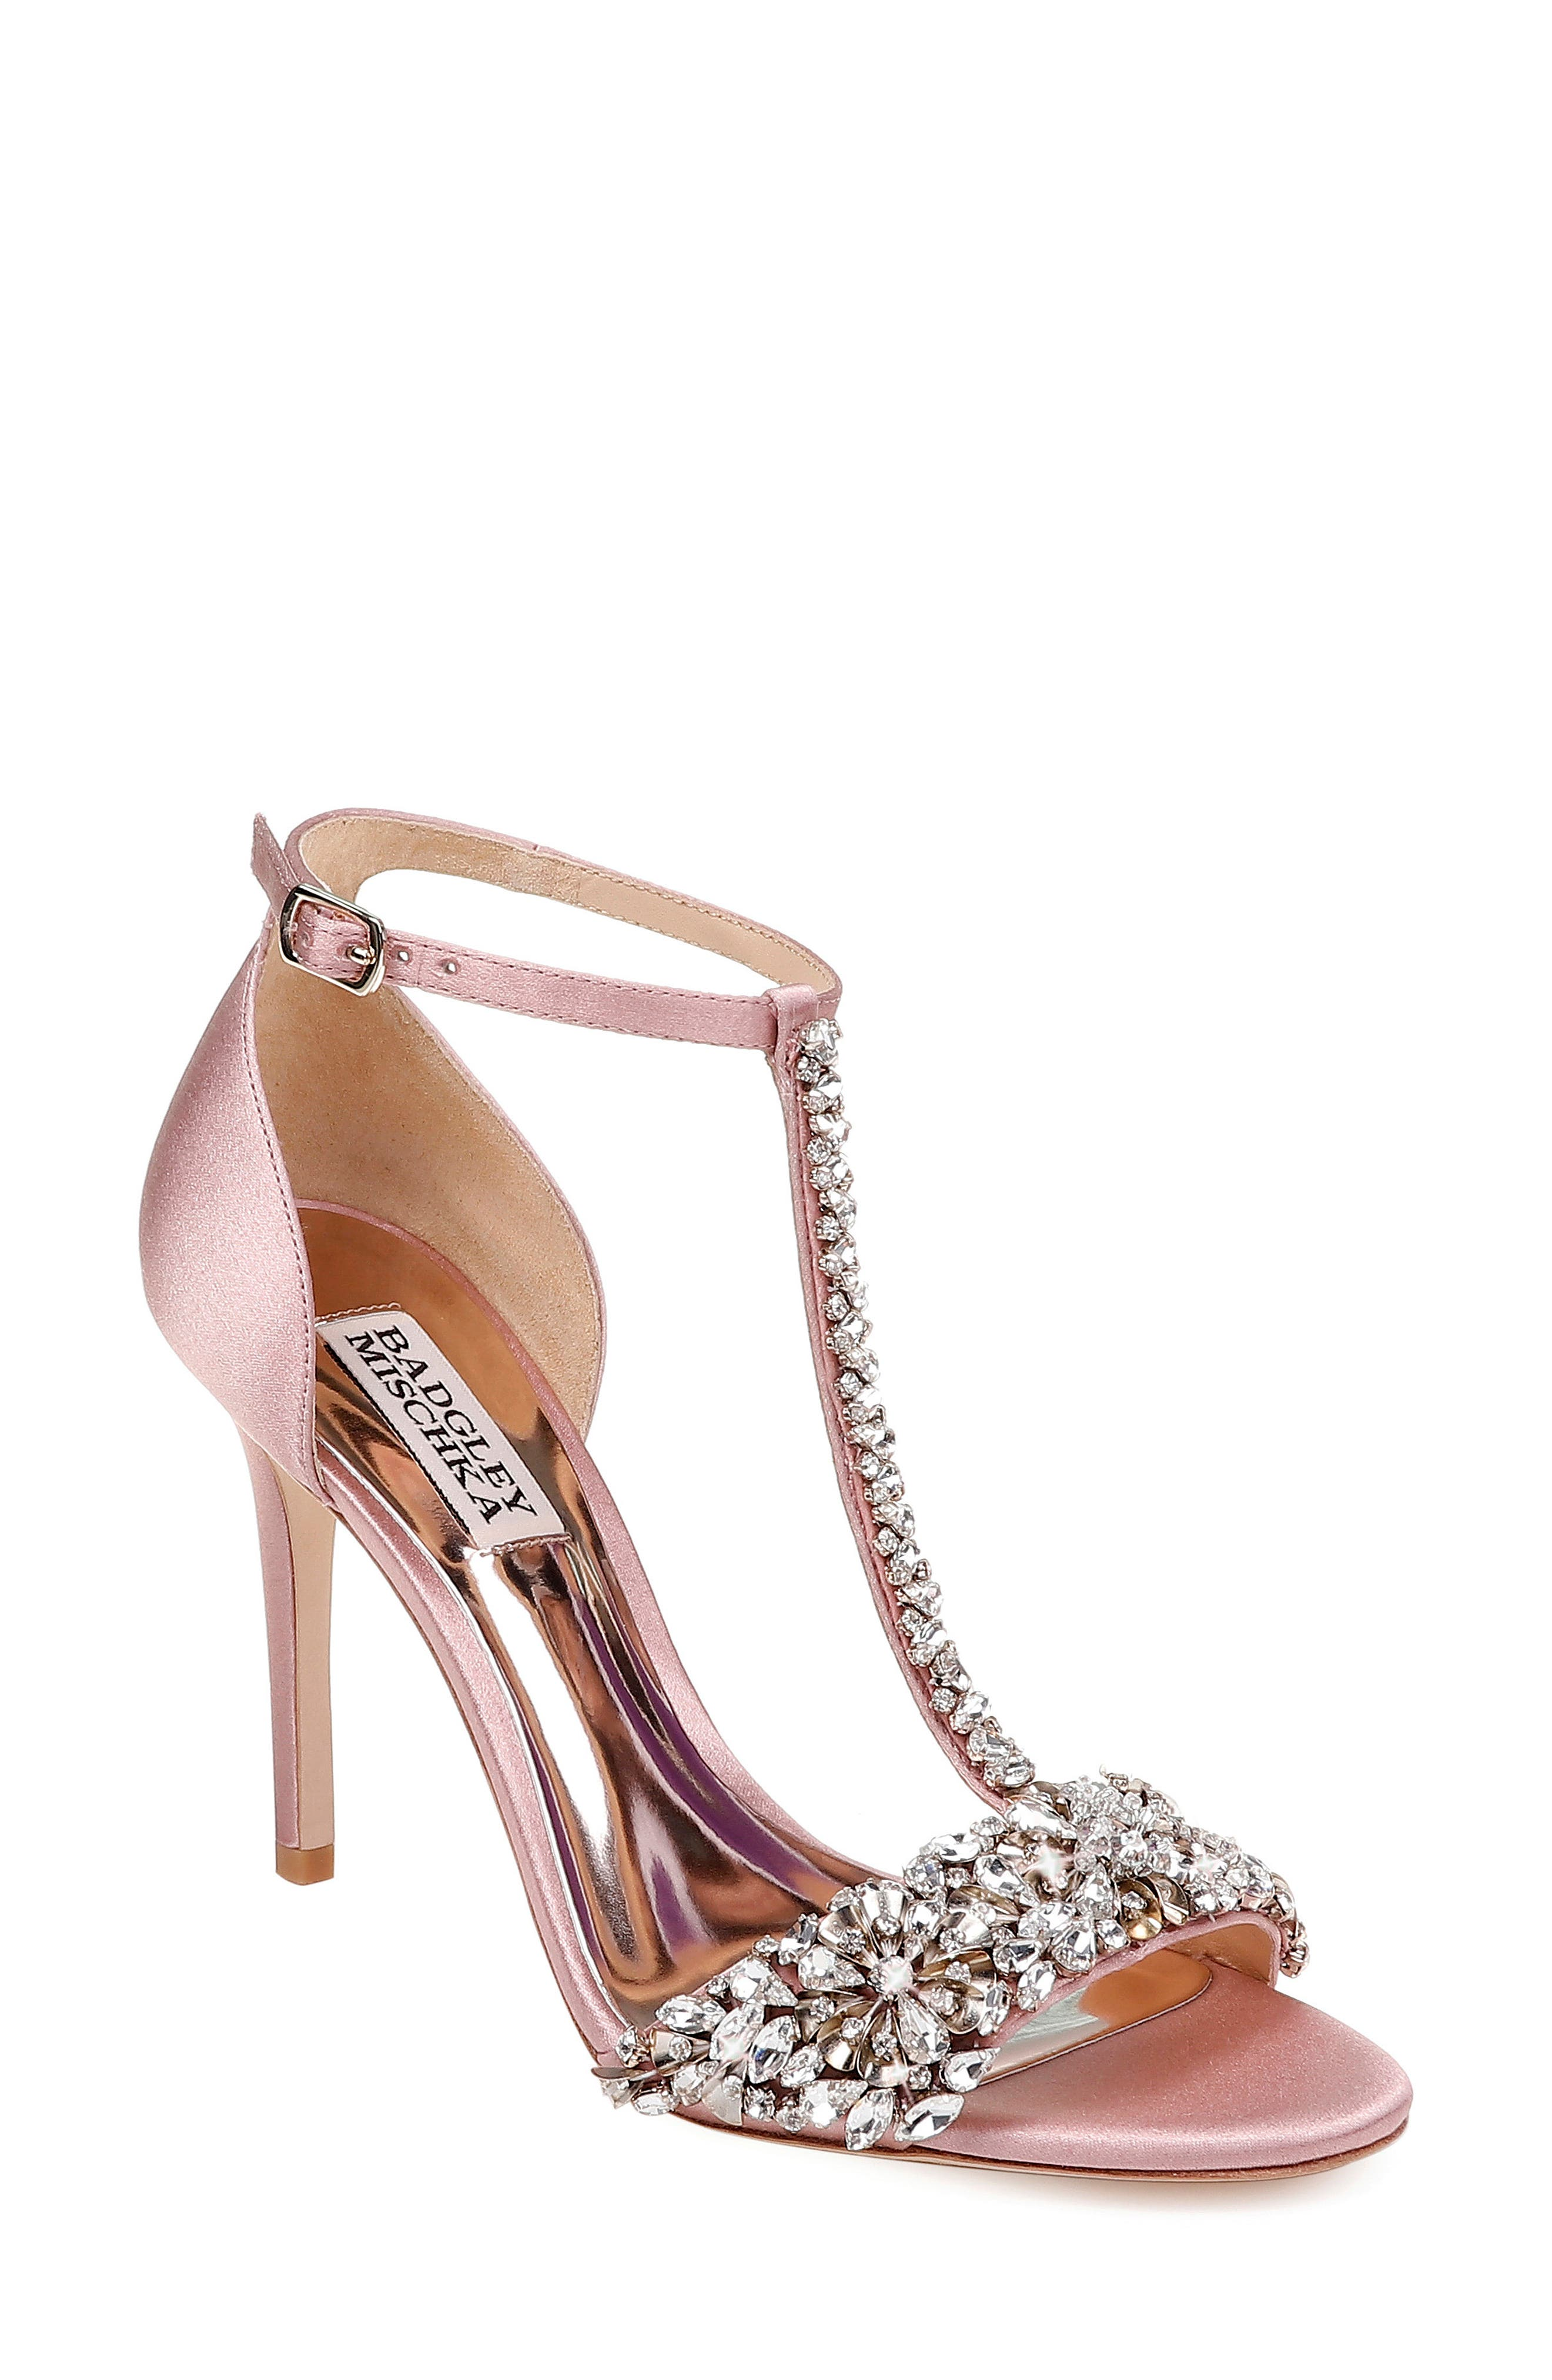 BADGLEY MISCHKA COLLECTION Badgley Mischka Crystal Embellished Sandal, Main, color, PINK ROSE SATIN